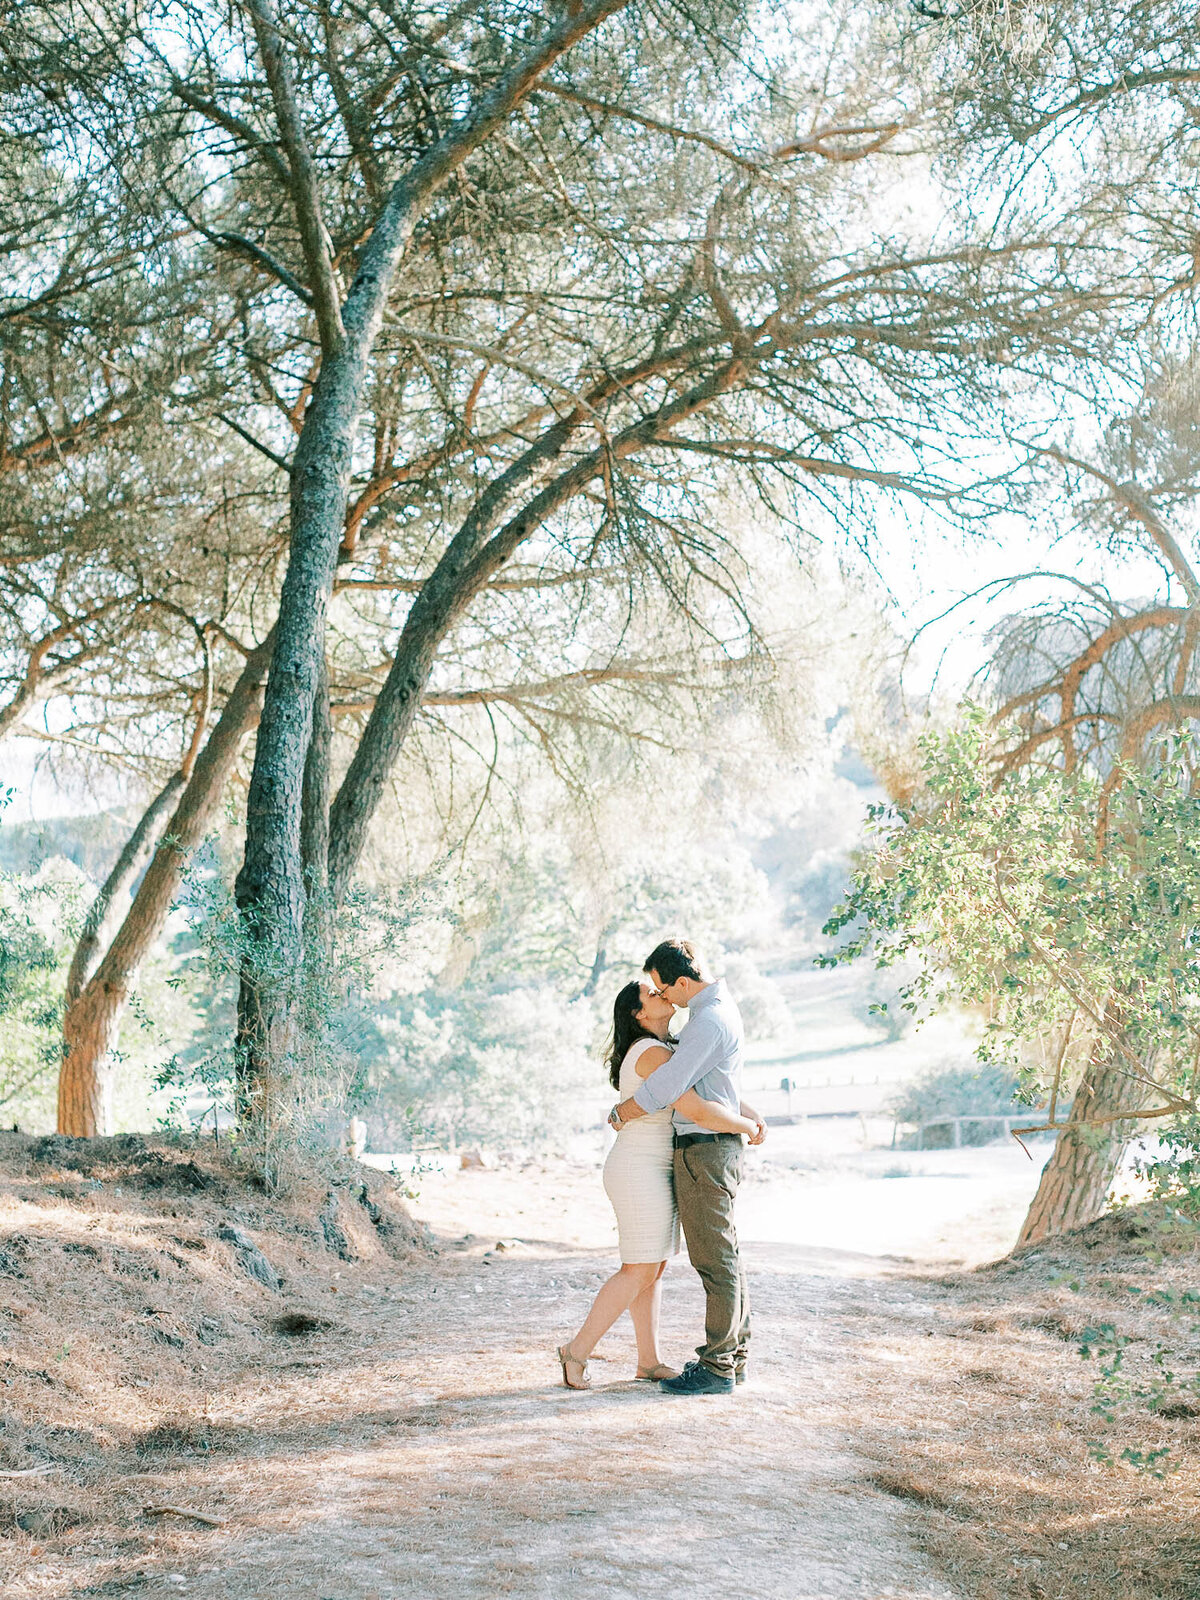 magical-engagement-in-monsanto-park-18